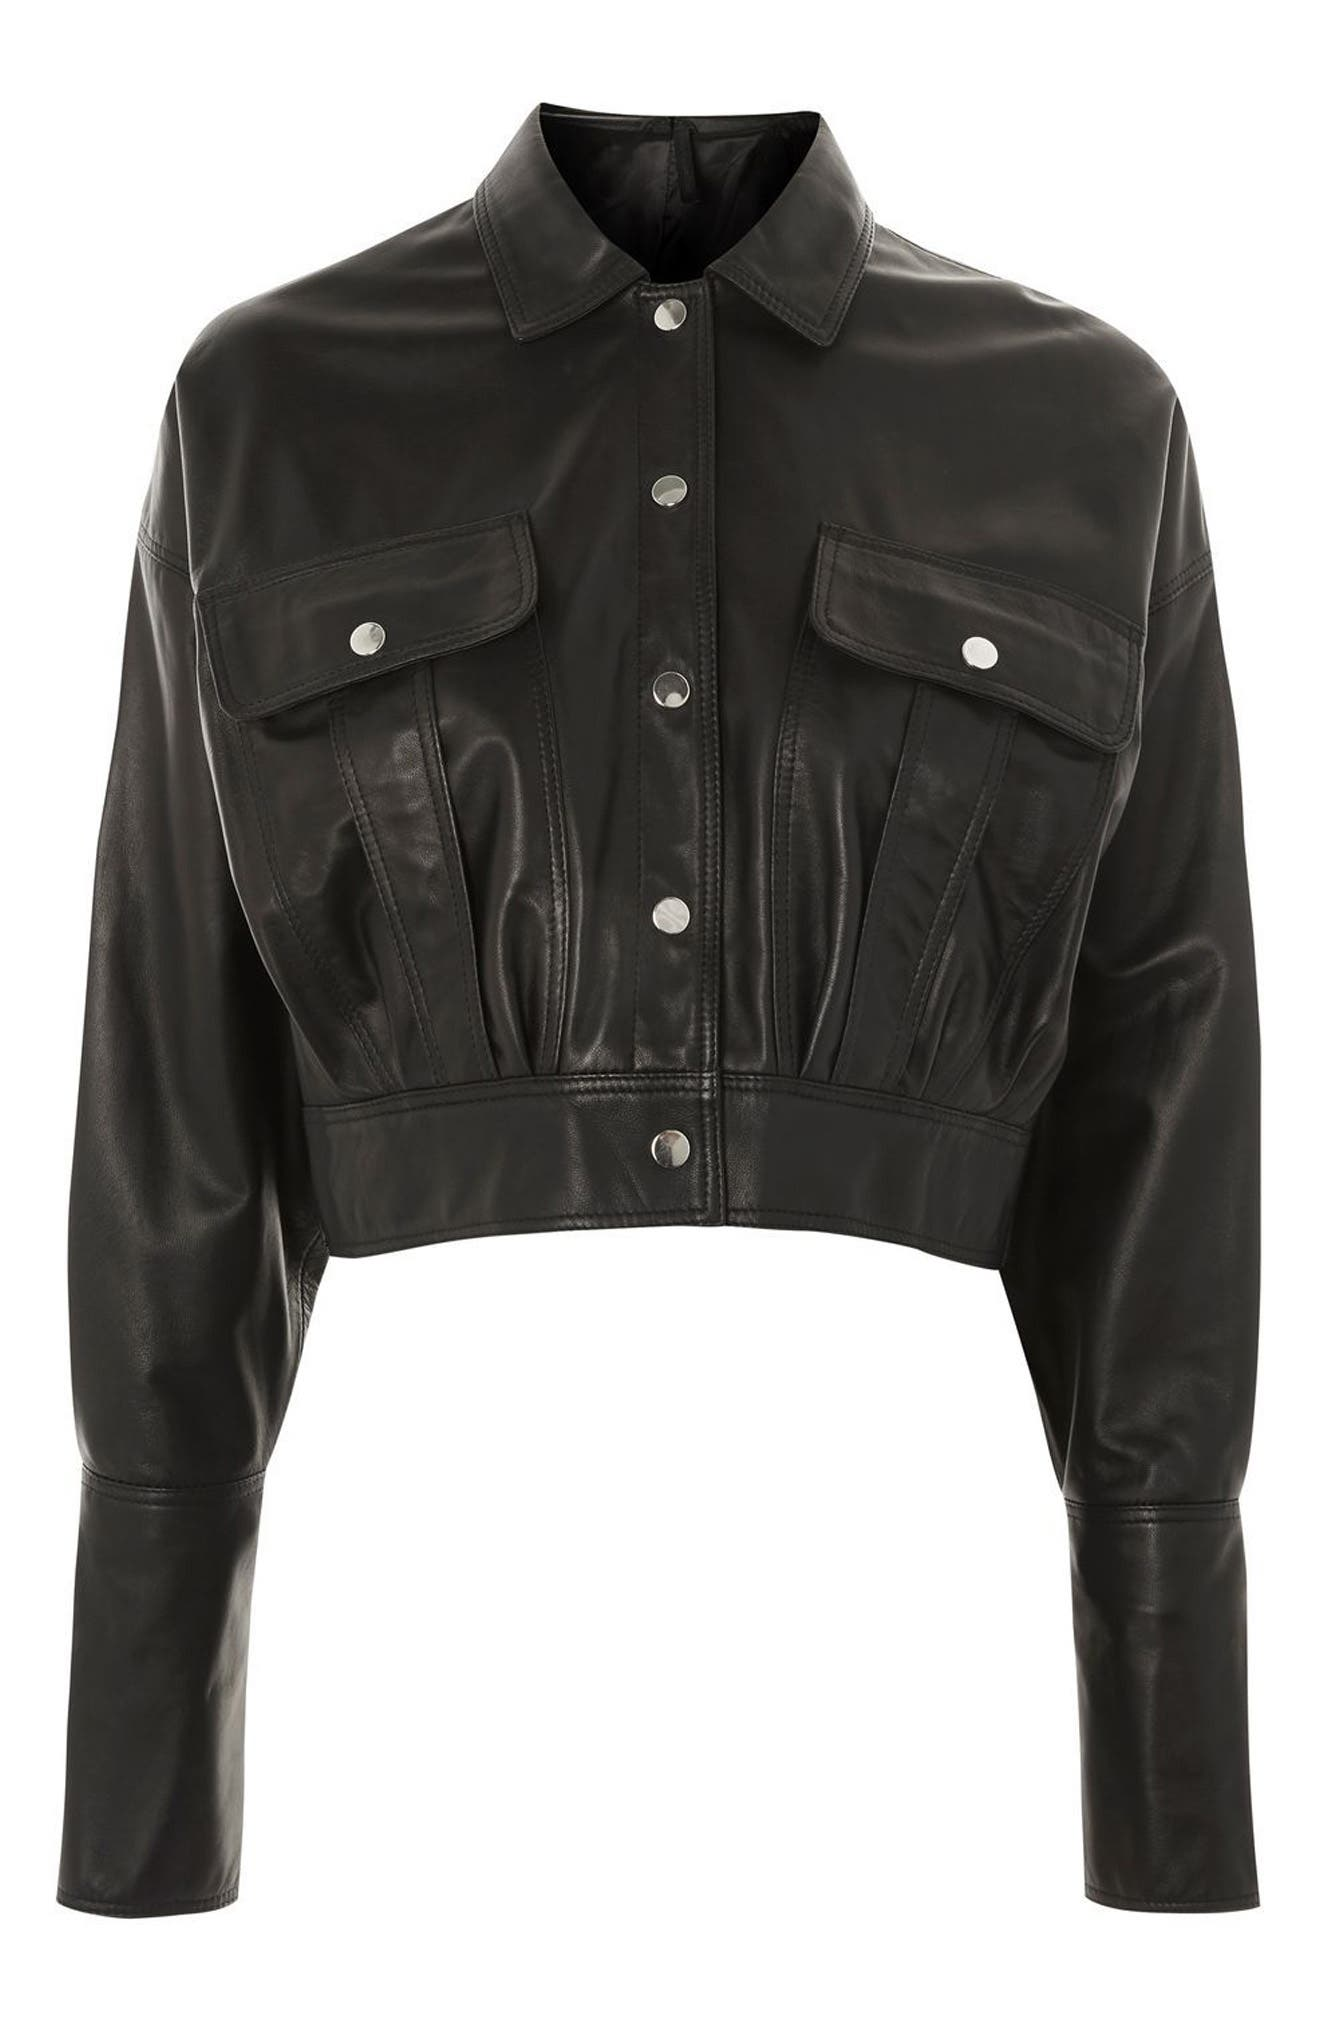 Topshop Boutique Crop Leather Jacket